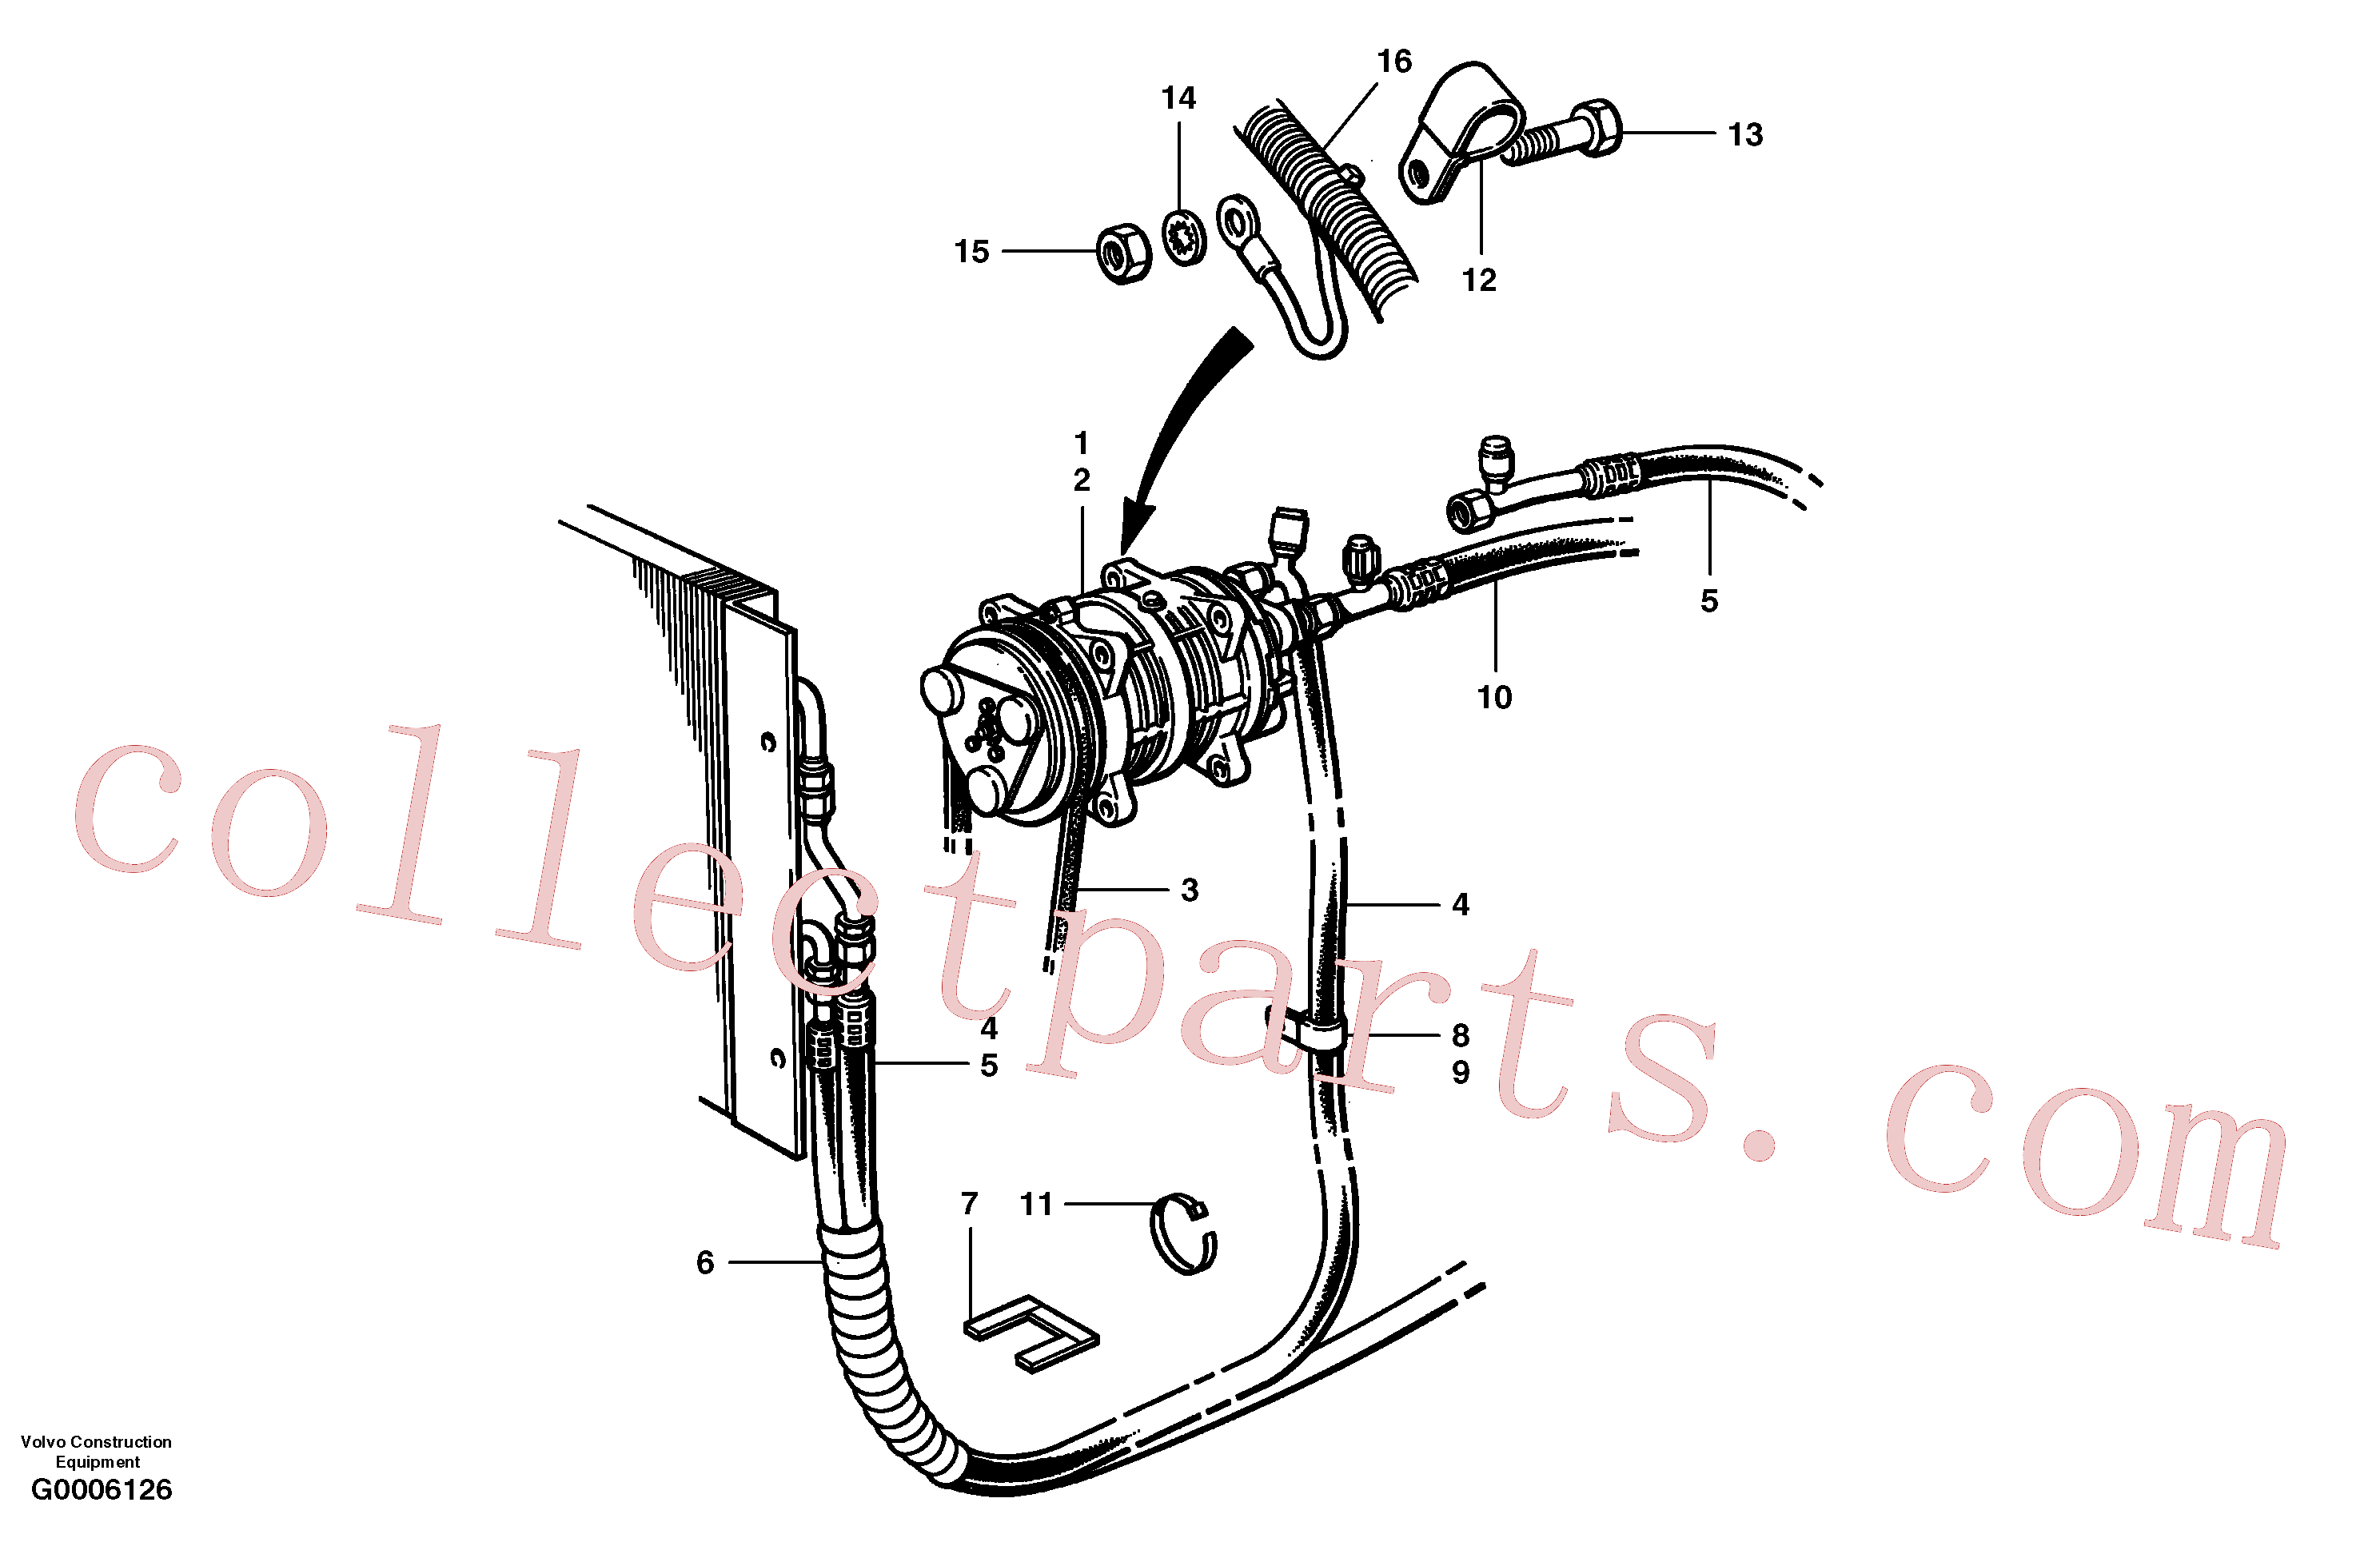 CH32316 for Volvo Air conditioning compressor and hoses(G0006126 assembly)